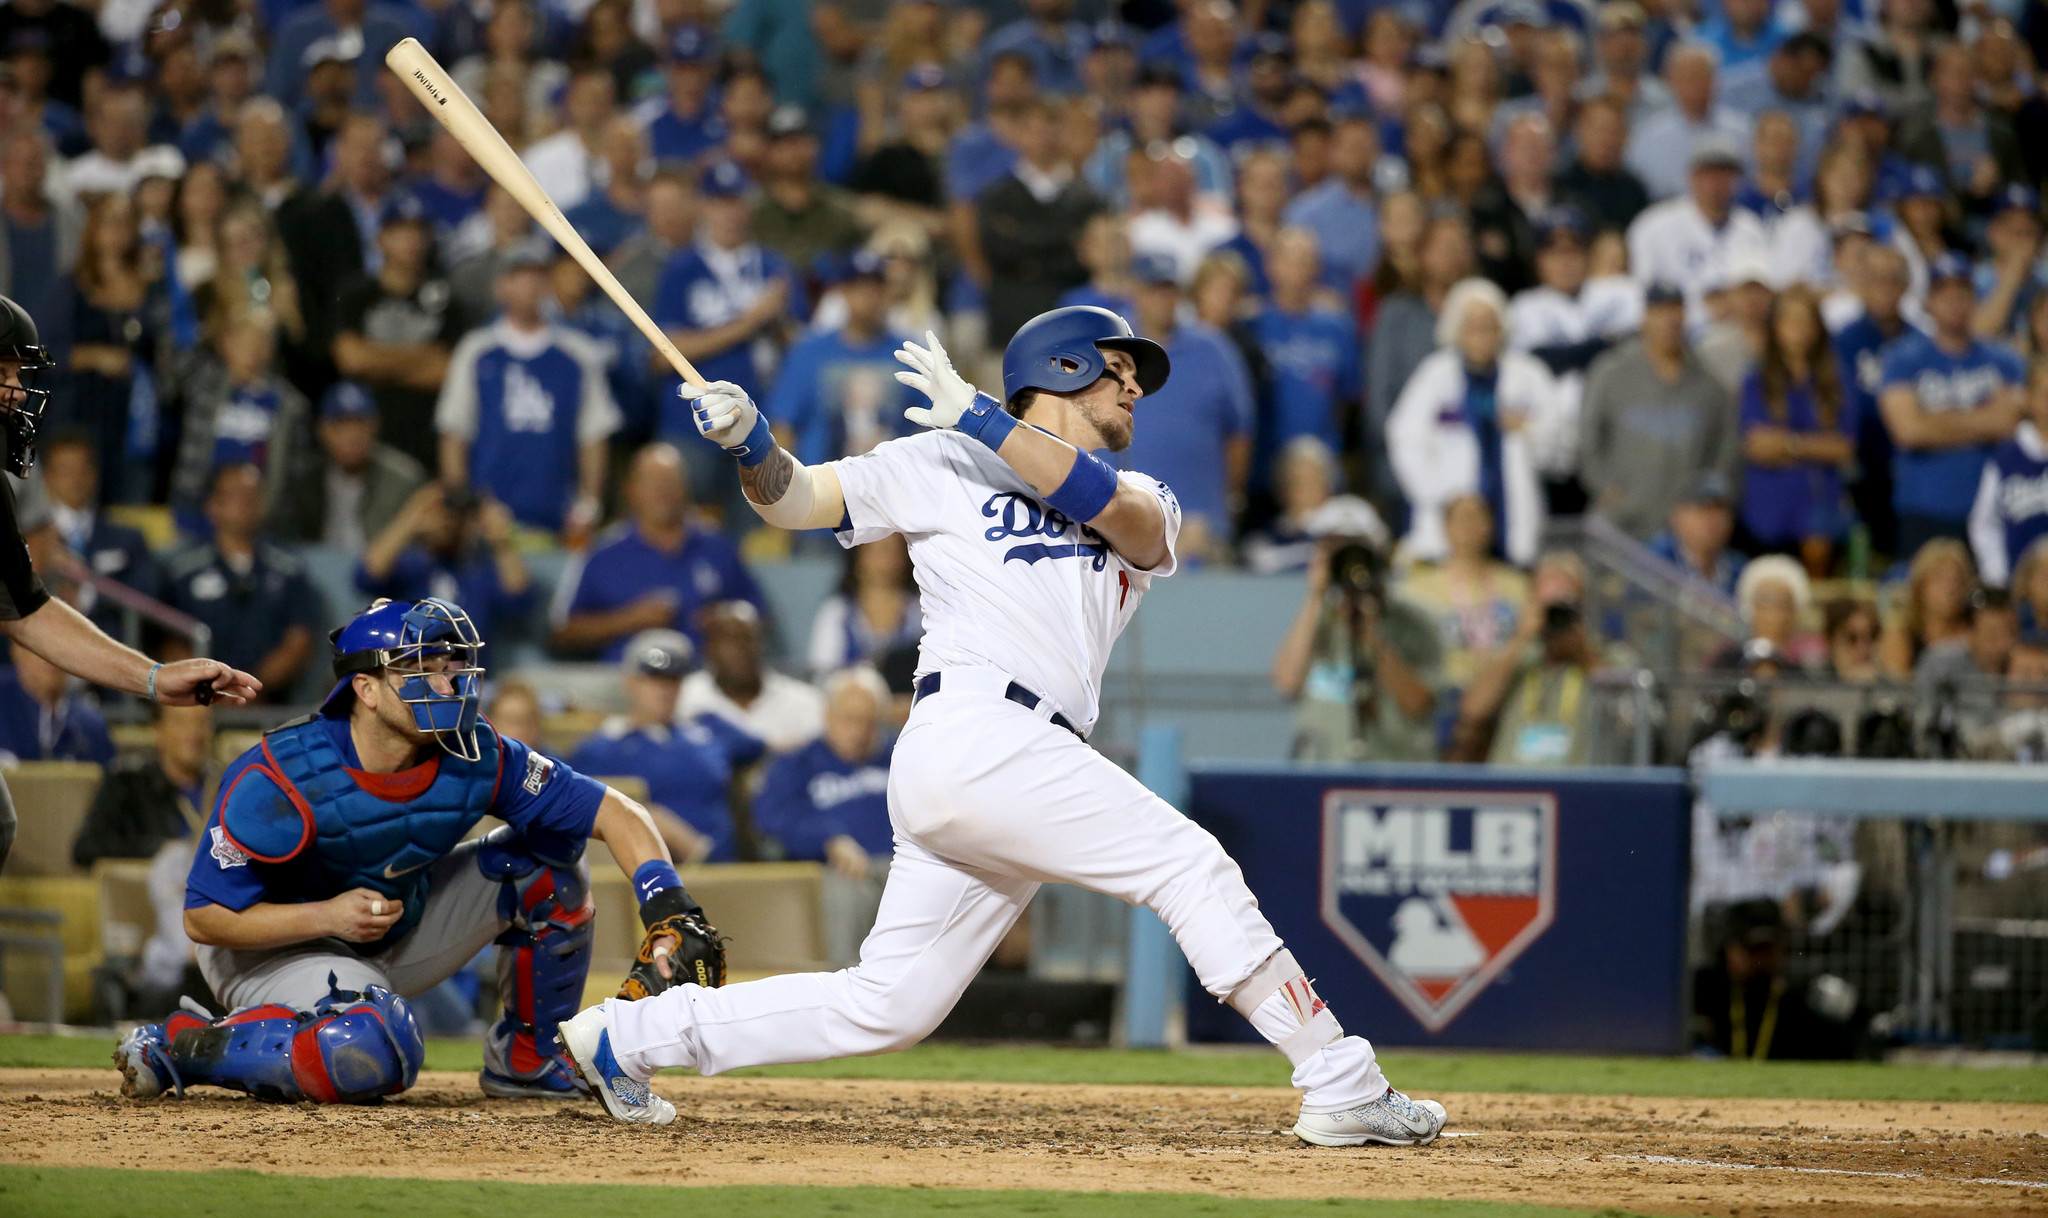 baseball chicago cubs news newslocker the situation the dodgers had taken a 1 0 lead in game 3 of the national league championship series on corey seager s rbi single to right field off cubs